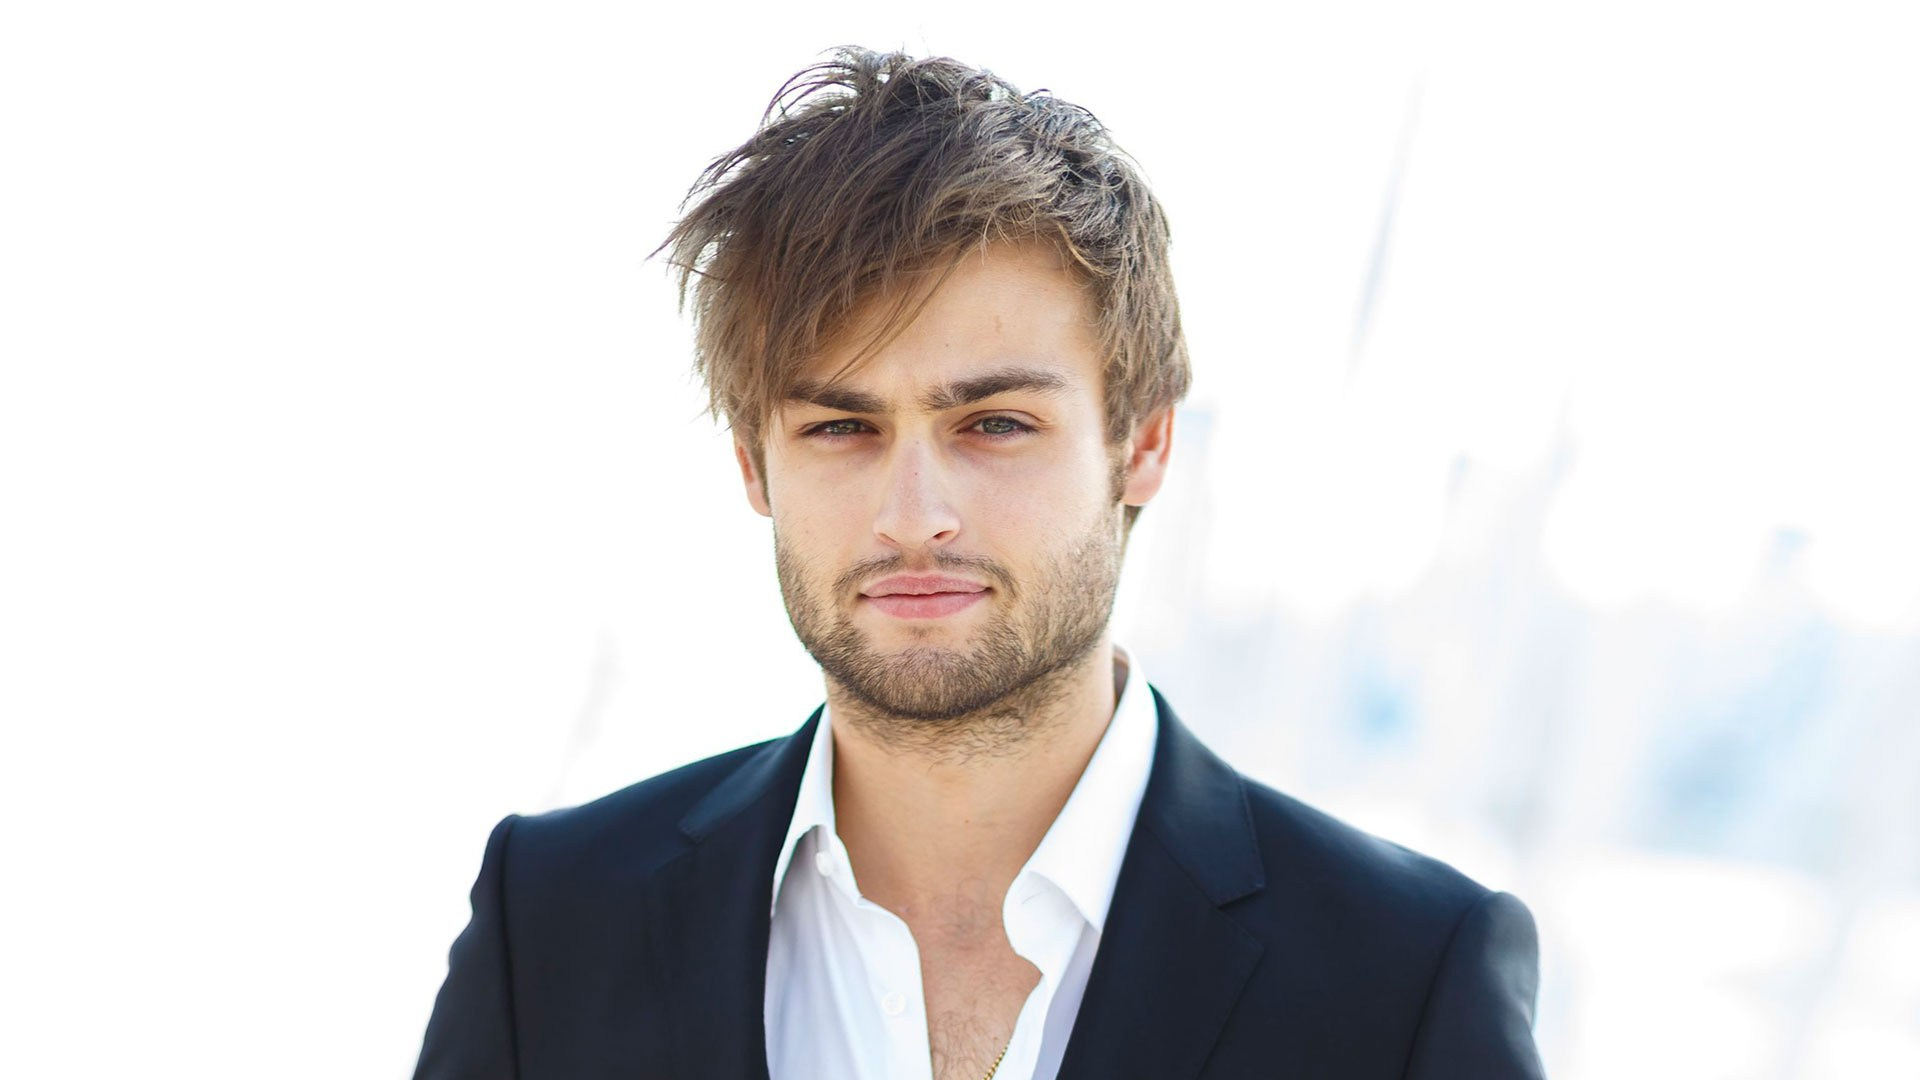 1920x1080 - Douglas Booth Wallpapers 12